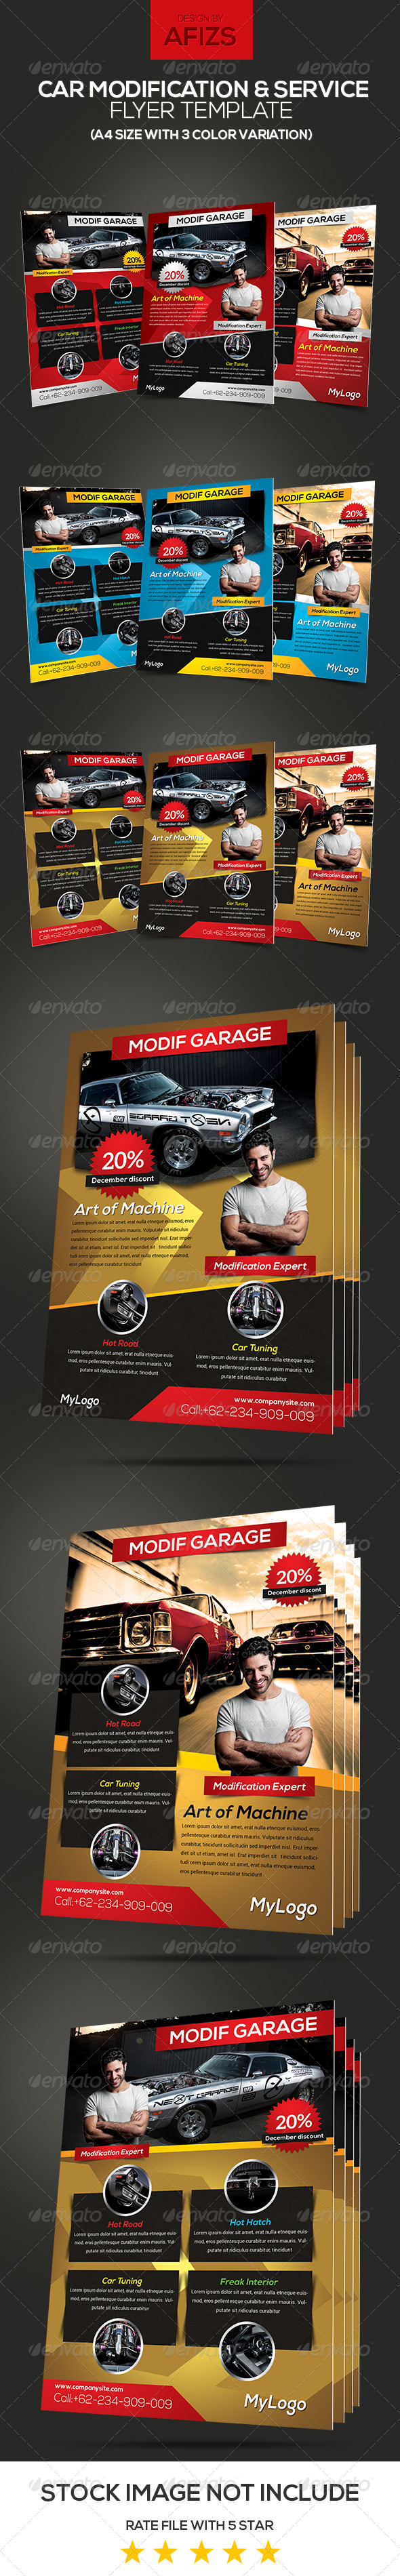 GraphicRiver Car Modification & Service Flyer 6009255